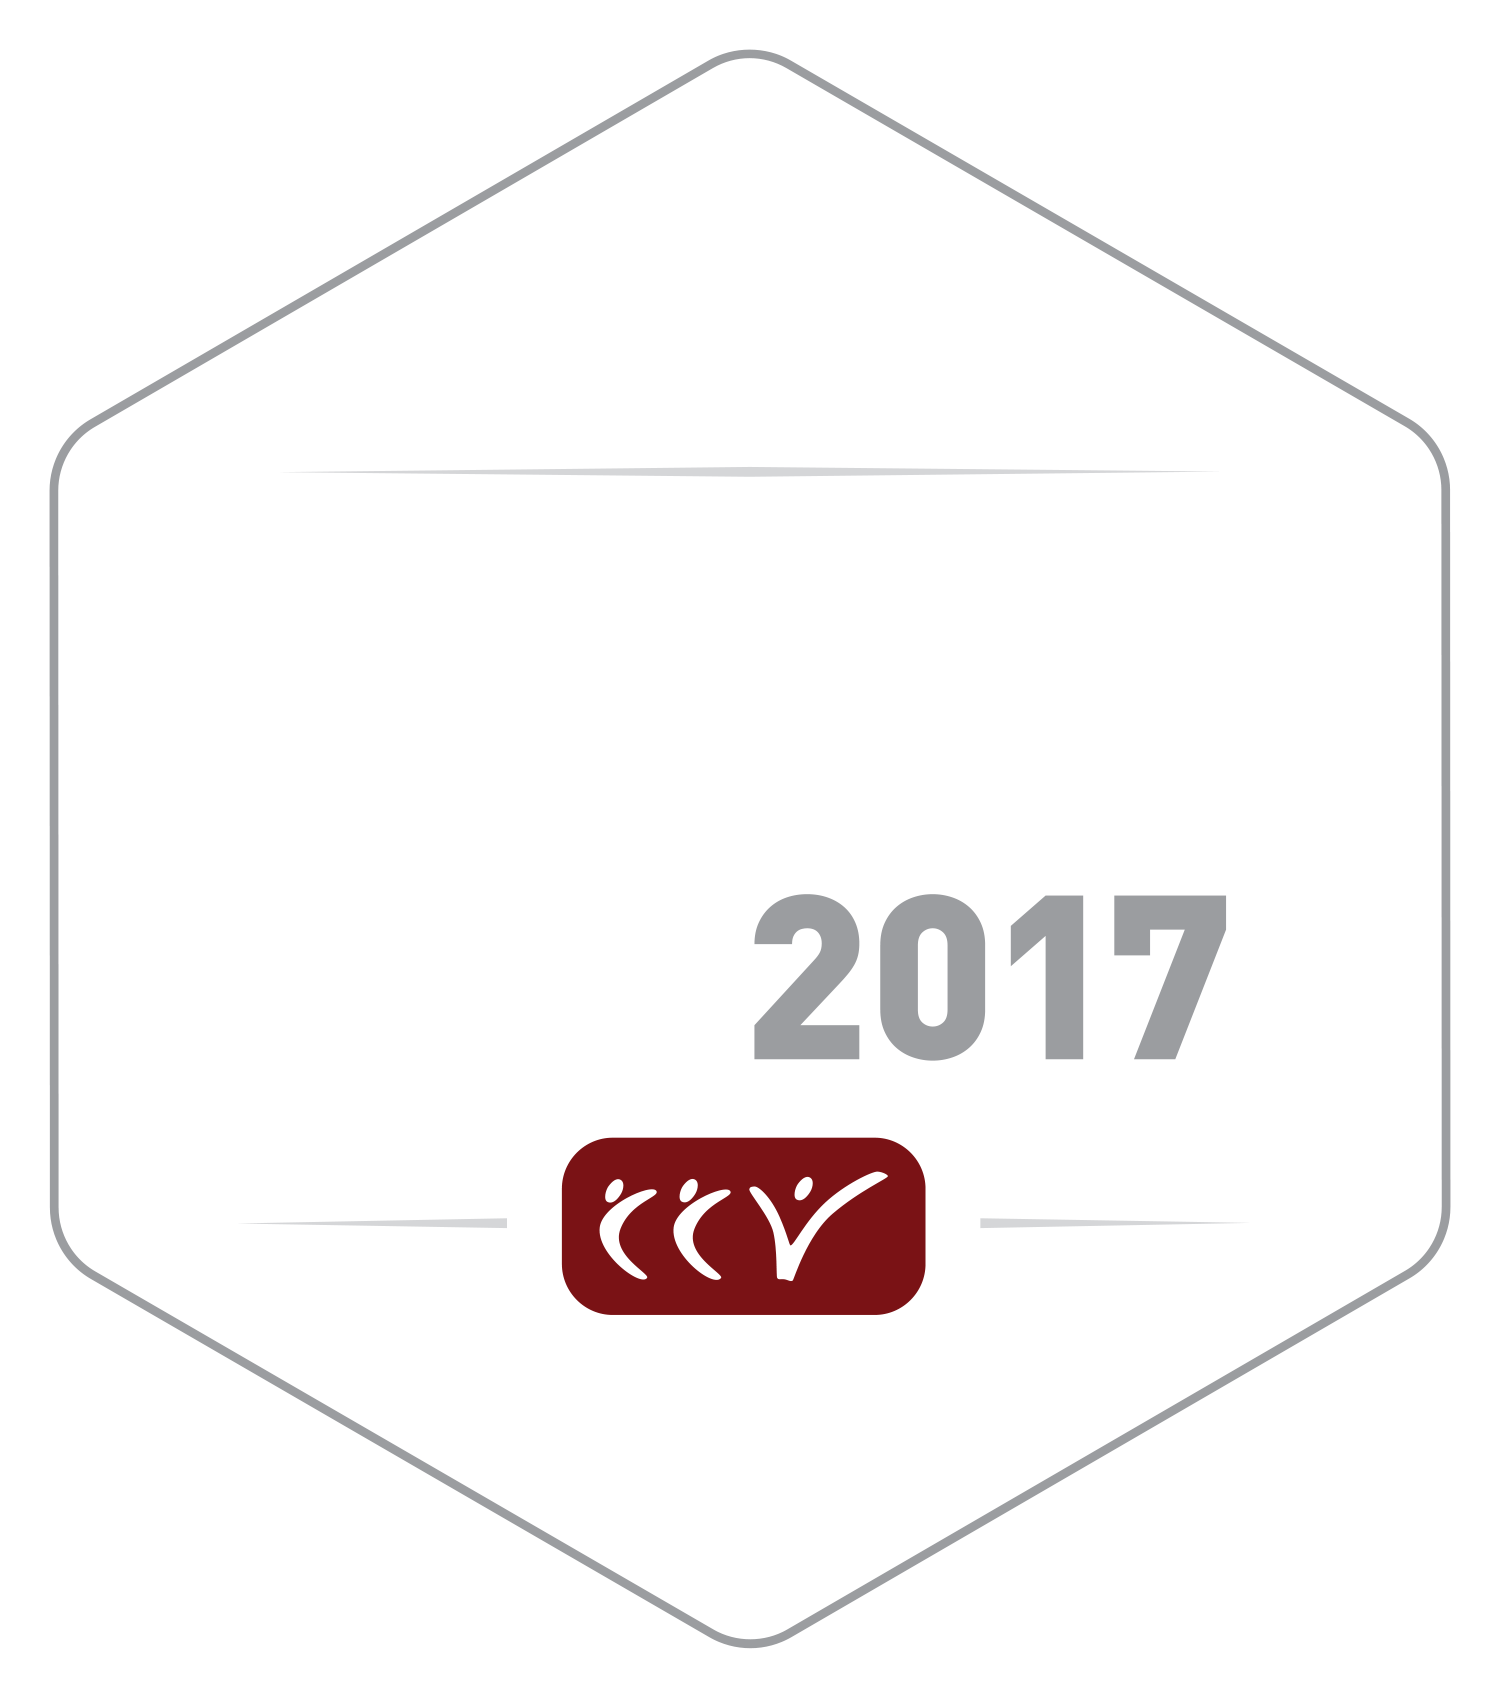 Love Our Schools Day 2017